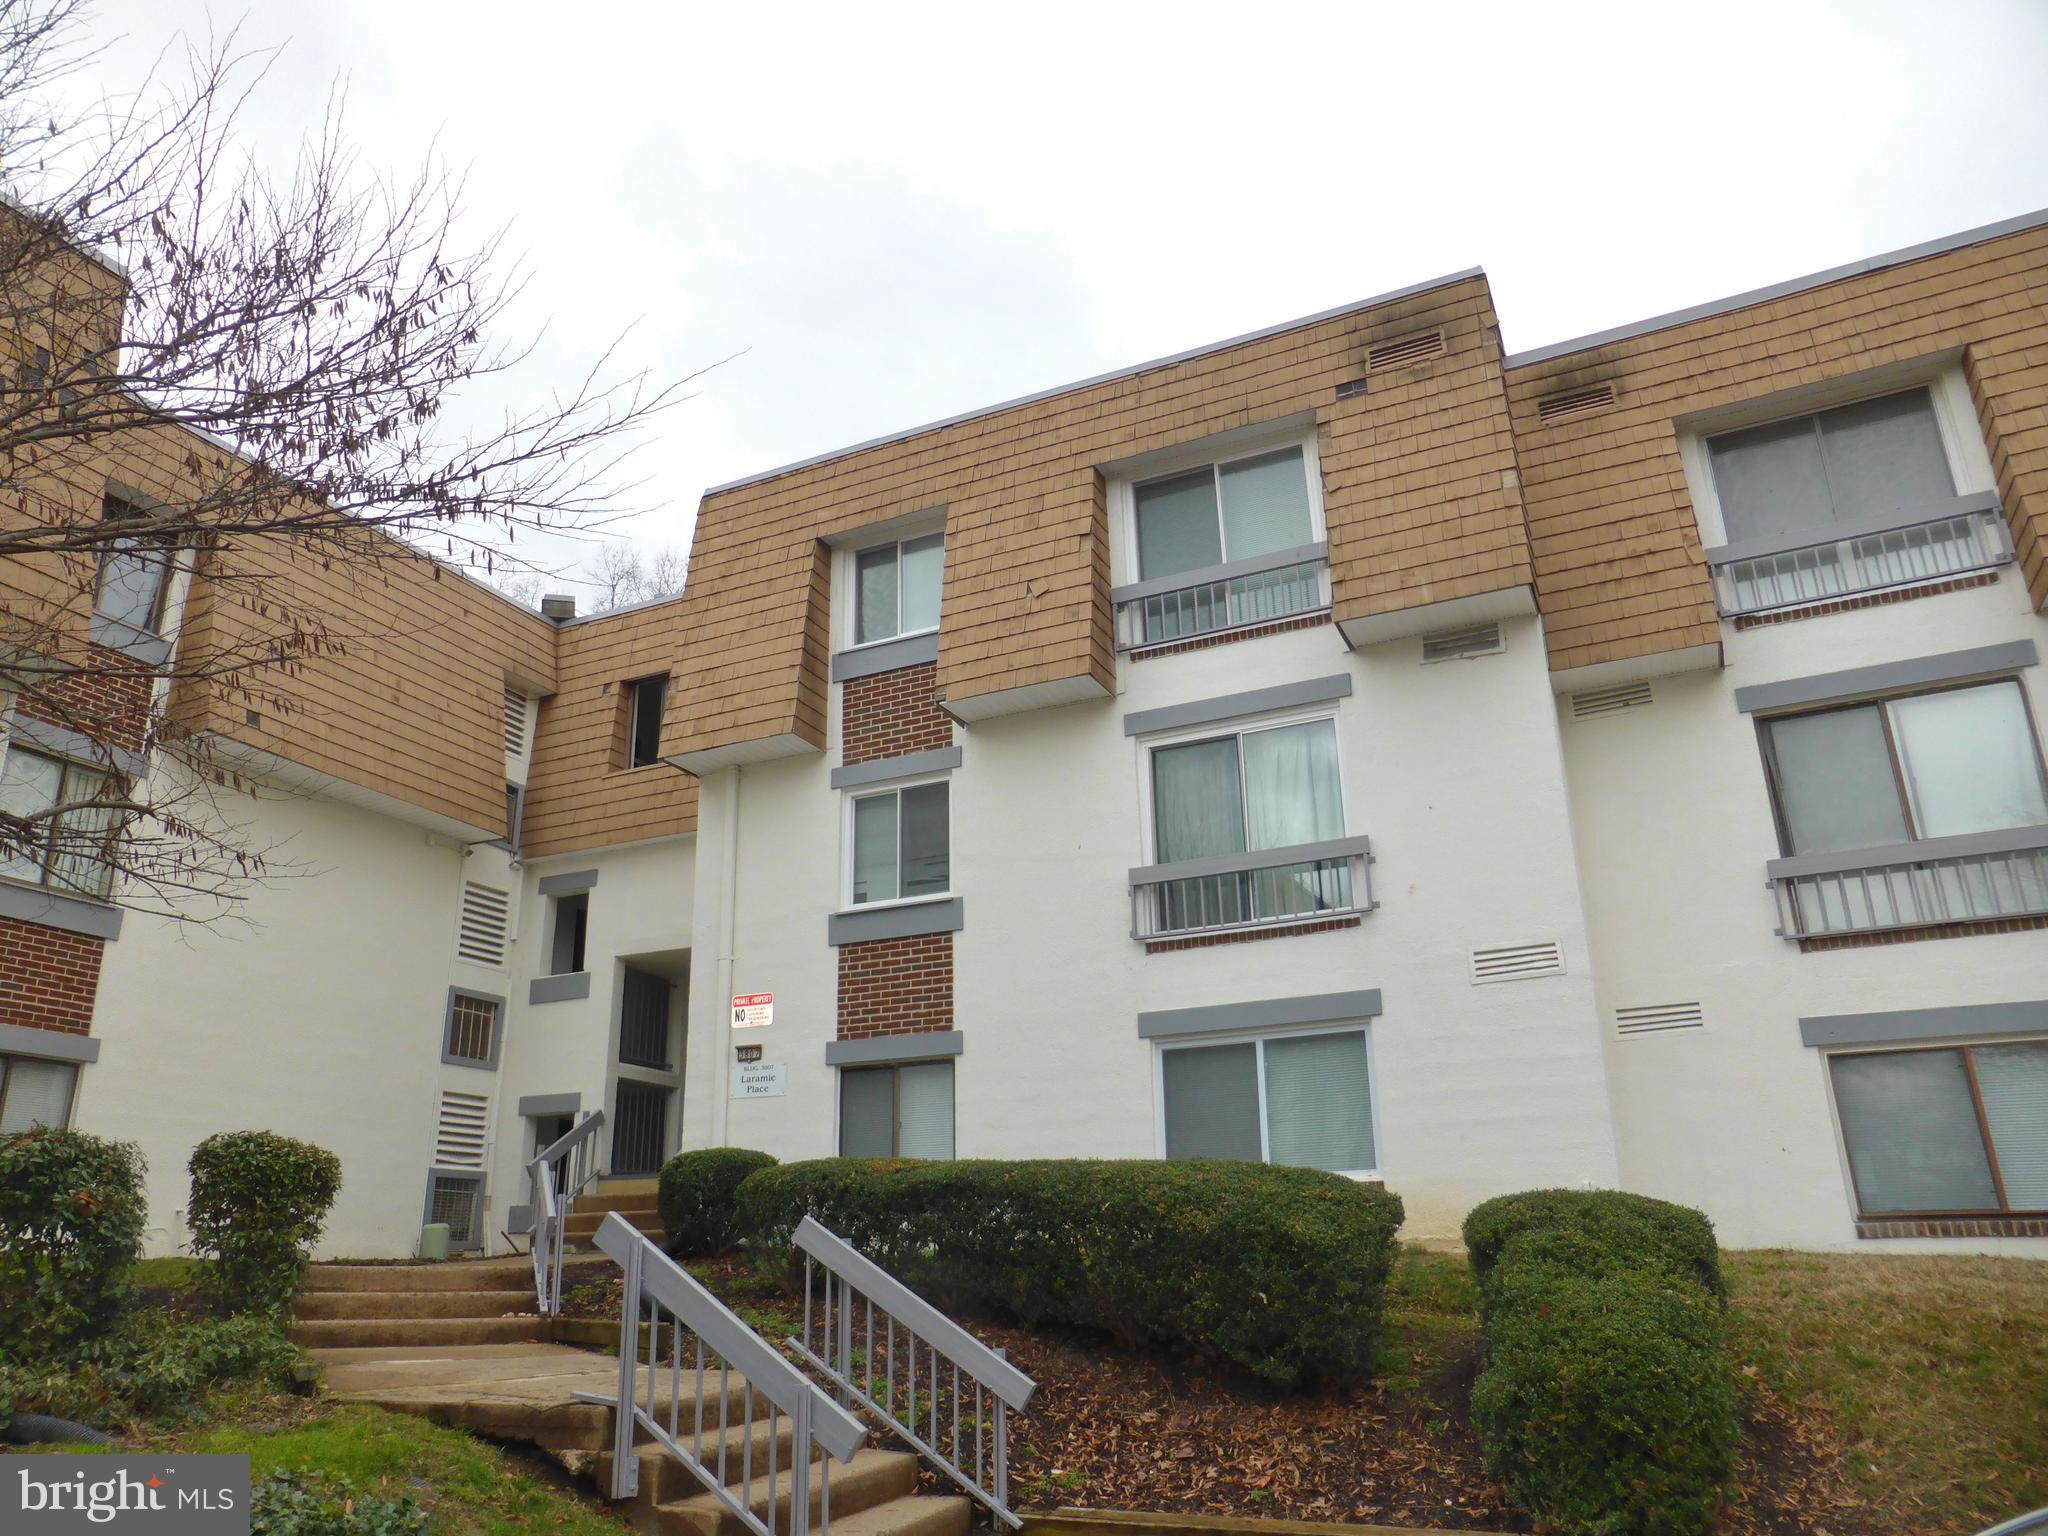 Great Value 3BR/2BA Top Floor Condo w/ Many Upgrades! Spacious & open living areas. Eat-In Kitchen w/ maple cabinets, recent SS appliances. Private balcony. Washer/Dryer in unit. Great neighborhood w/ Pool! So convenient to Bus to Metro, Ft Belvoir, 495, National Landing!